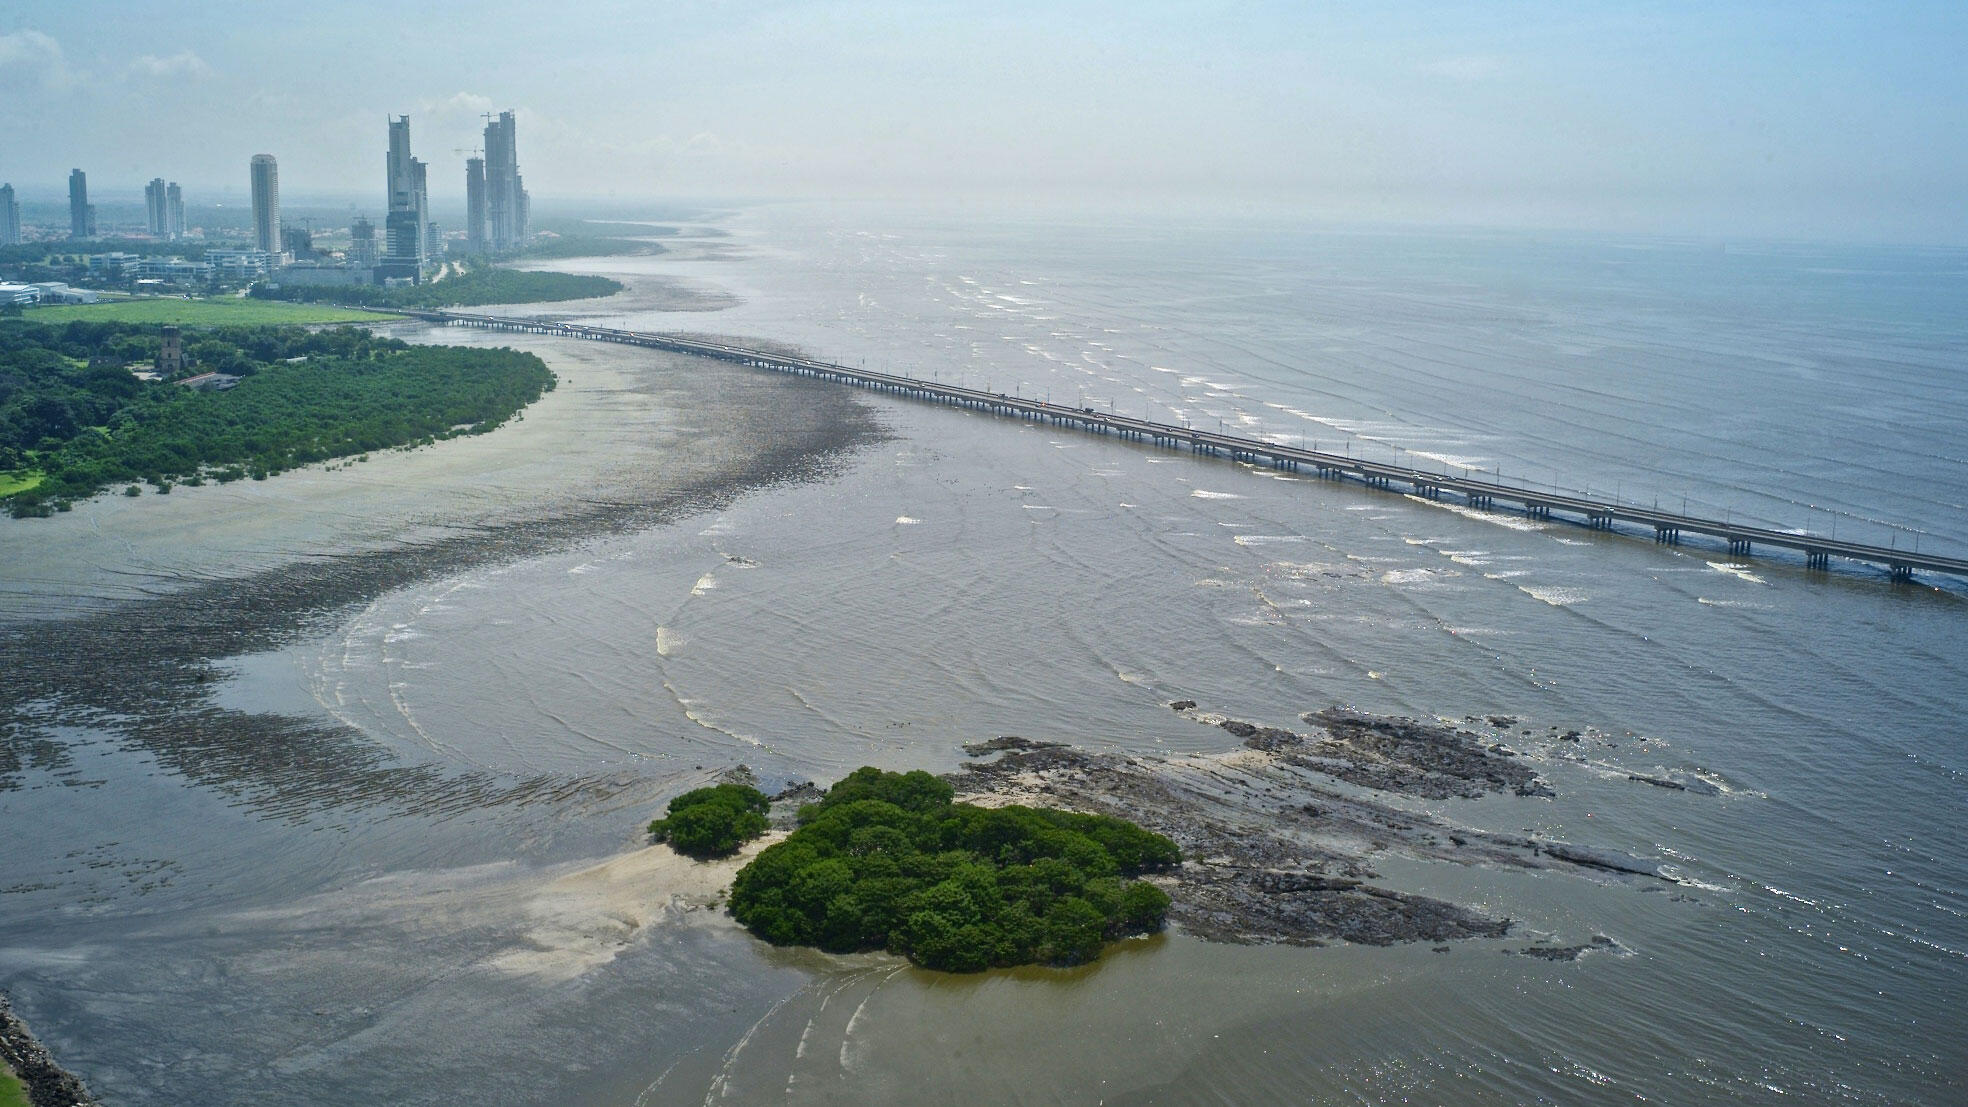 Thanks to its new federal protection, the Bay of Panama will continue to serve as a critical habitat for birds. Kike Calvo/VWPics.